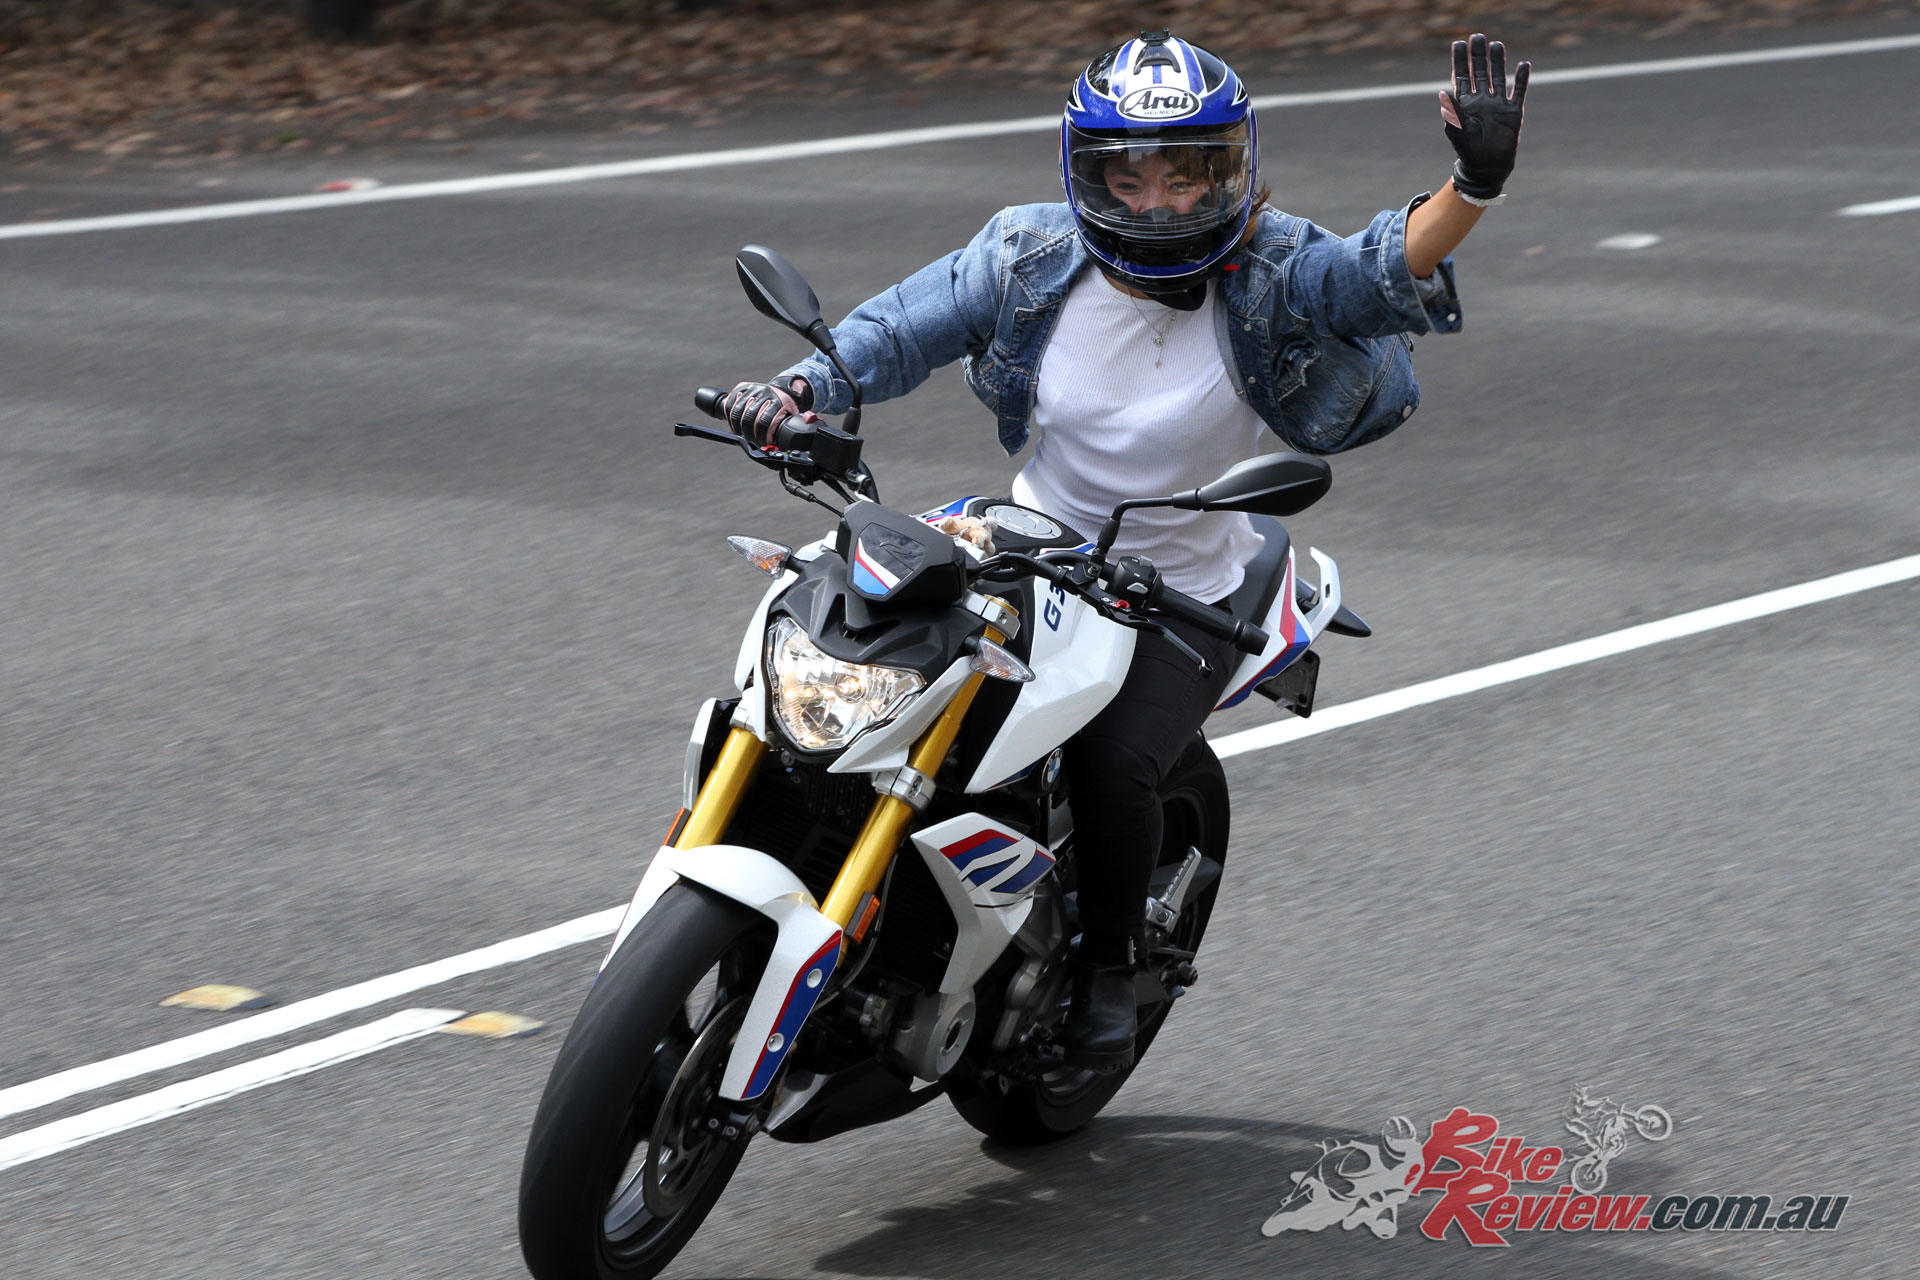 Elis on her BMW G 310 R